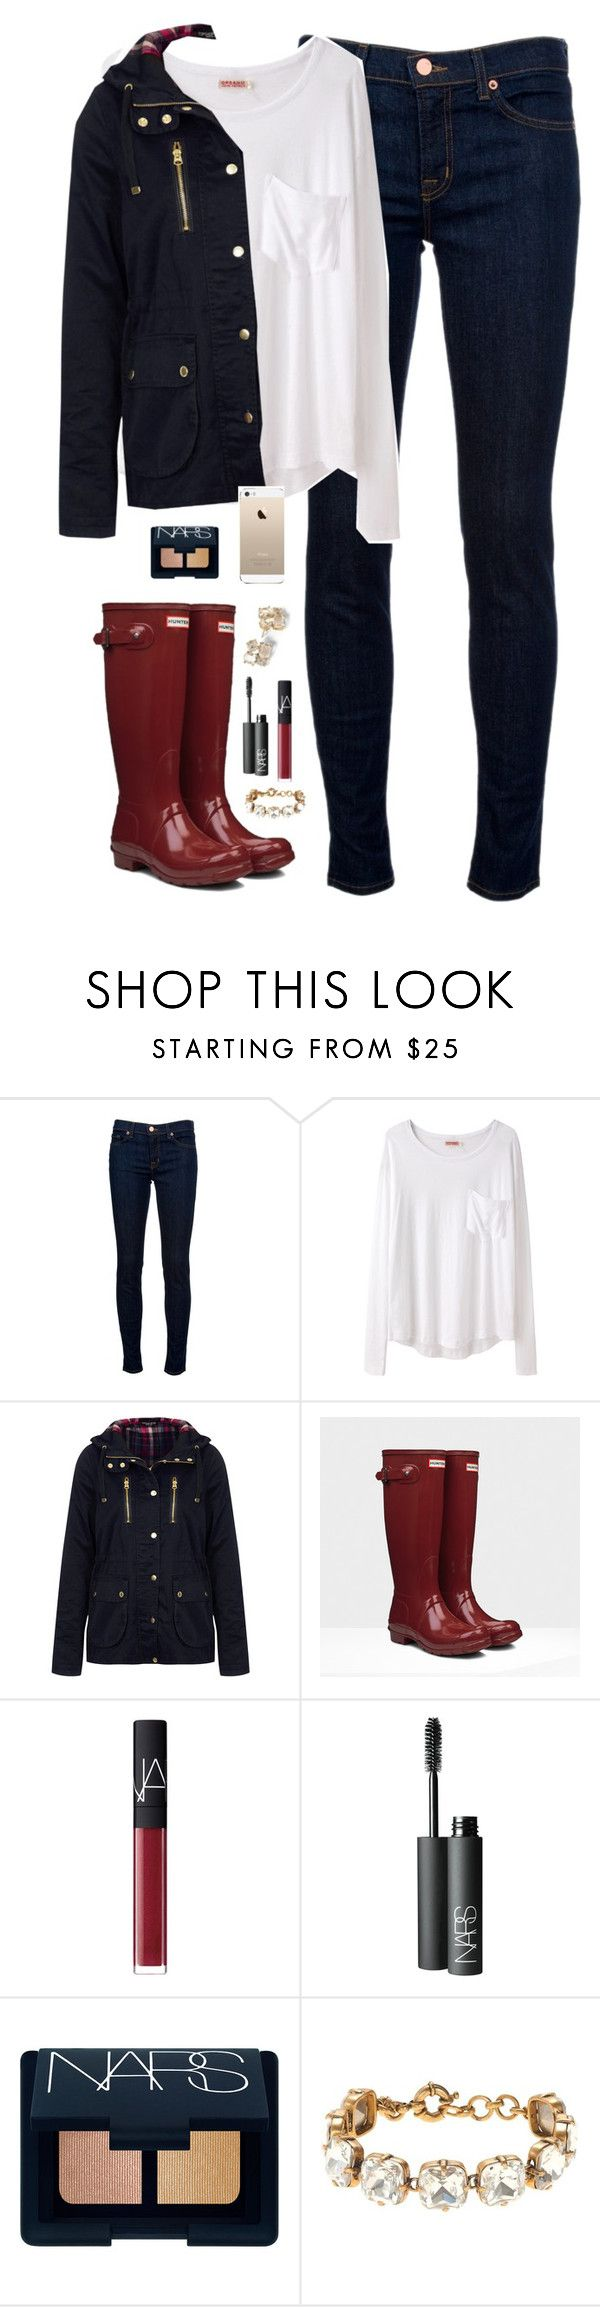 day off school by classically-preppy on Polyvore featuring Organic by John Patrick, Topshop, J Brand, Hunter, J.Crew, NARS Cosmetics and Kate Spade